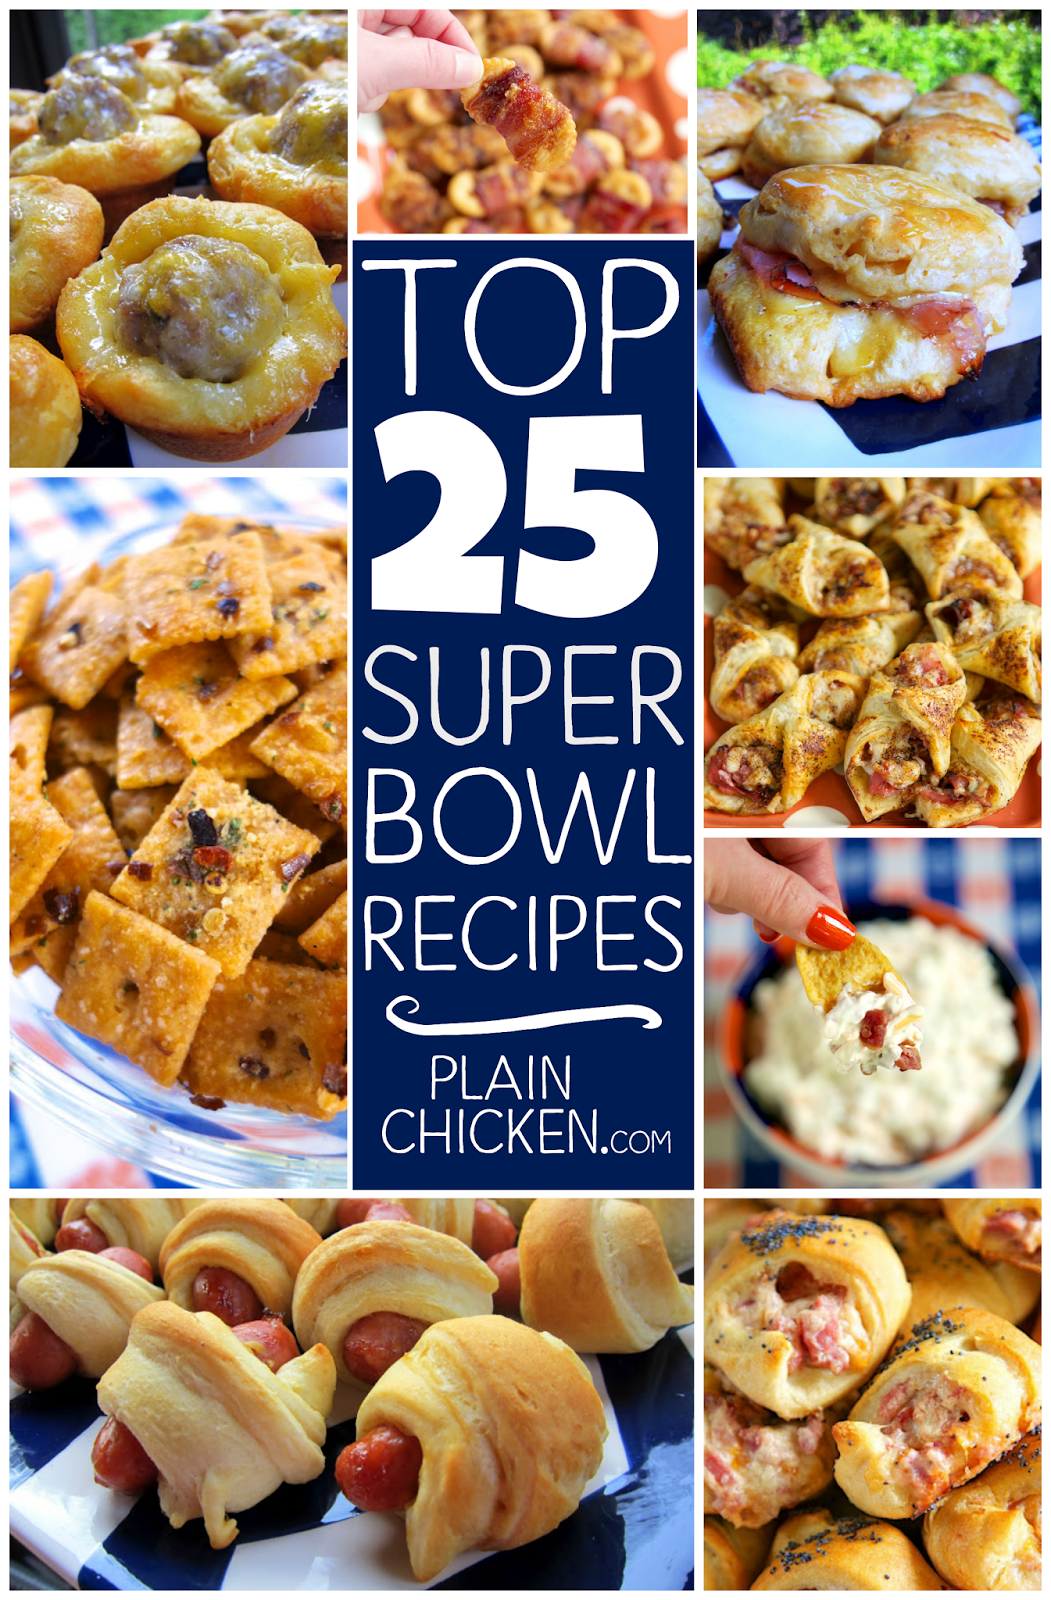 Best 25 Models Ideas On Pinterest: Top 25 Super Bowl Recipes